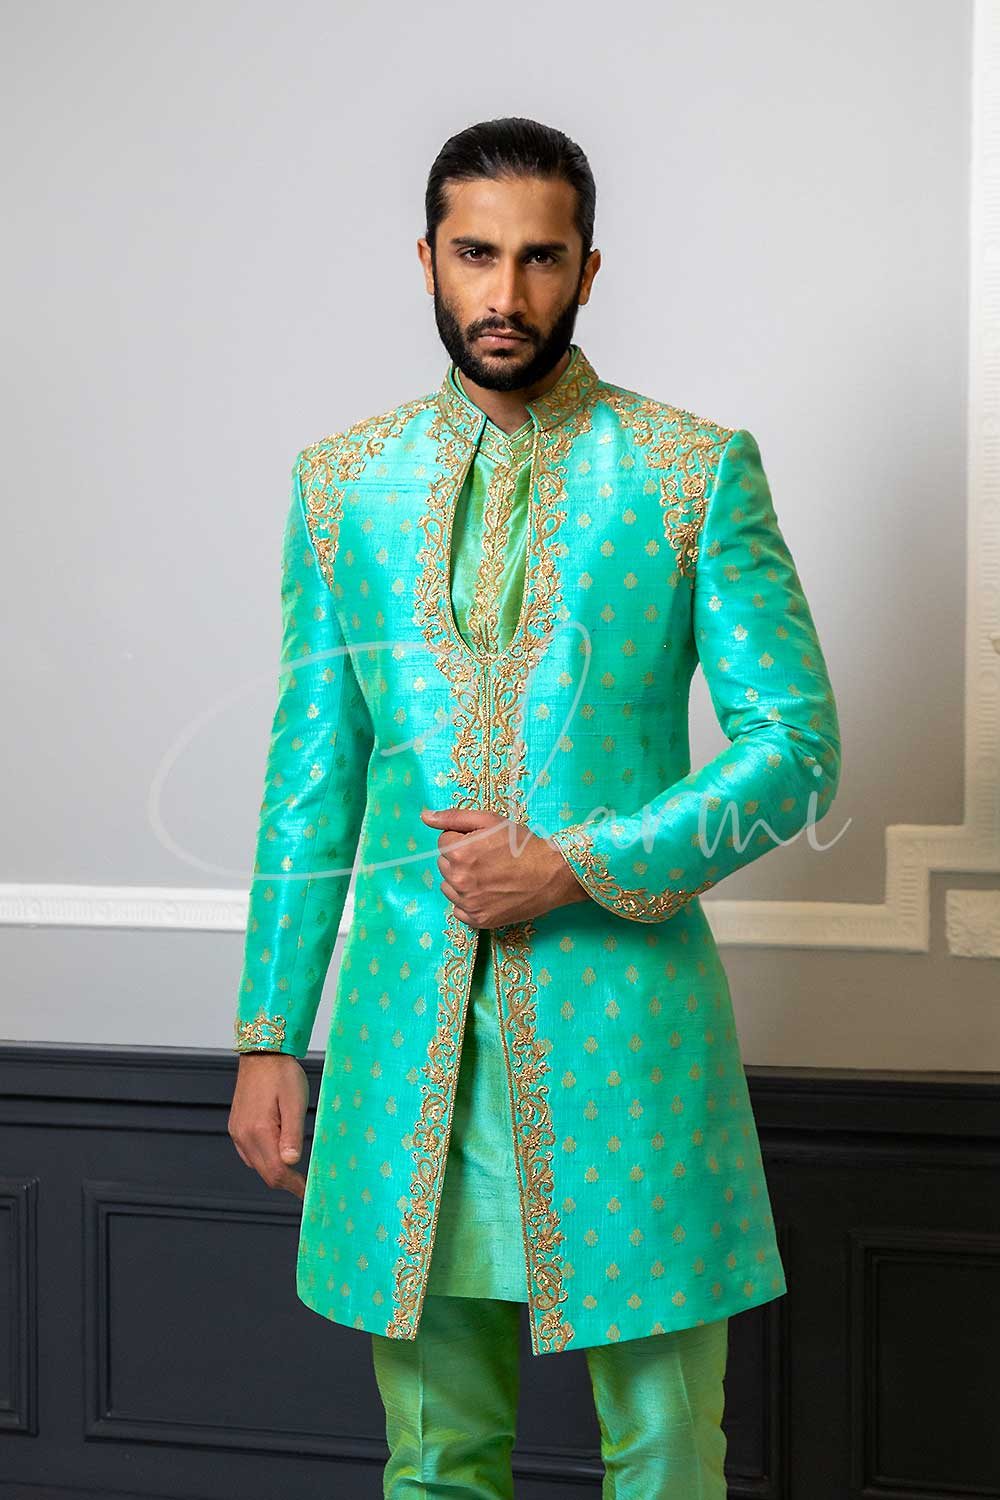 Green Brocade Silk 3 Piece Mens Wedding Sherwani UK